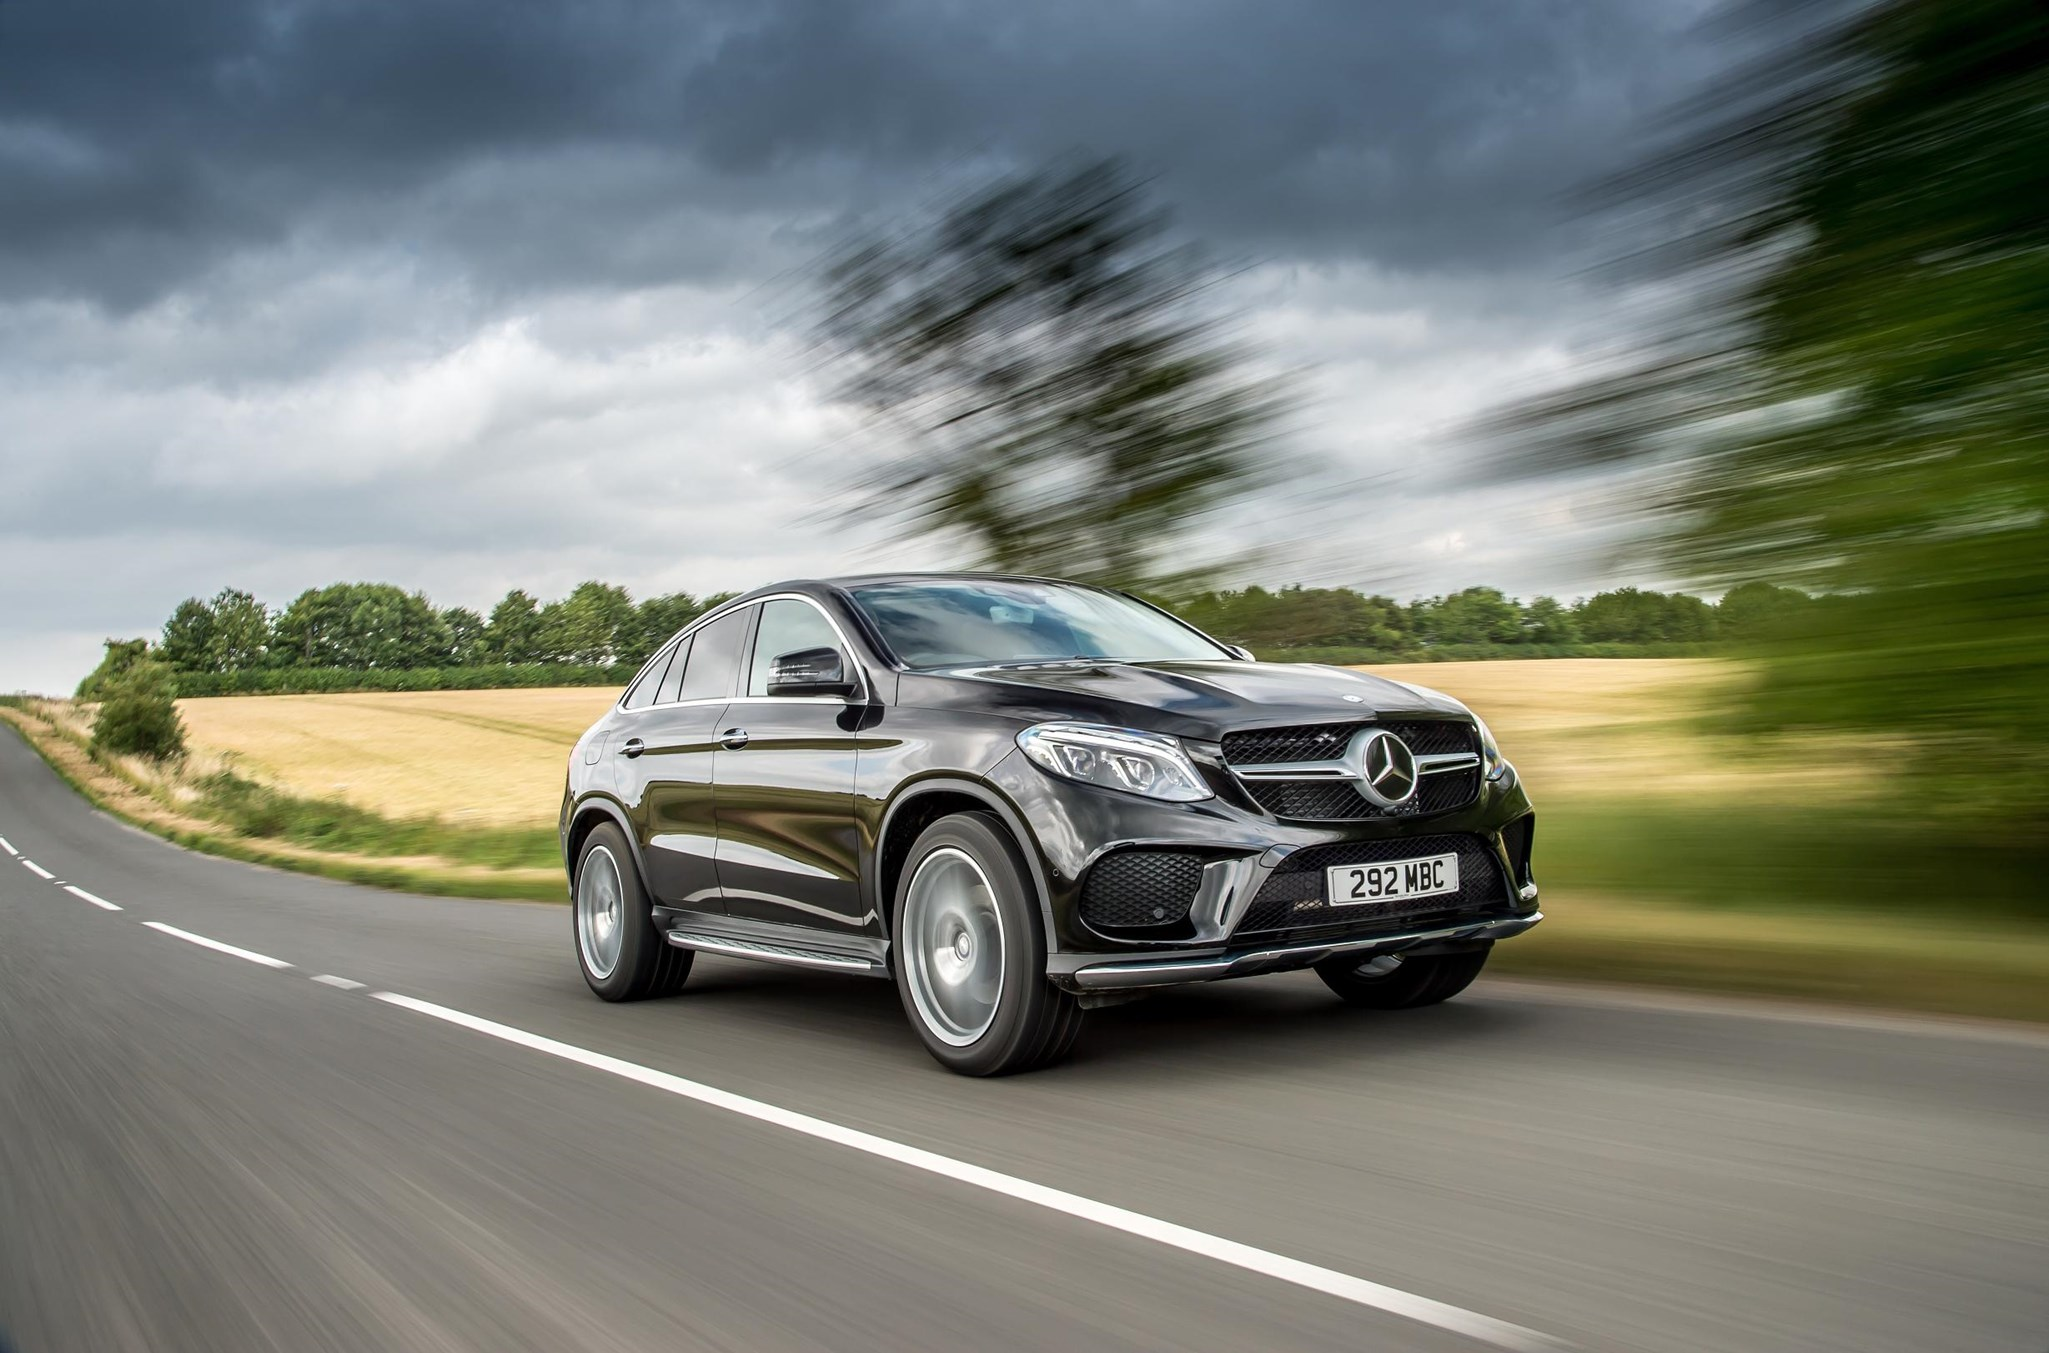 Used BMWs For Sale >> Mercedes-Benz GLE 350d 4Matic AMG Line Coupe (2015) review ...